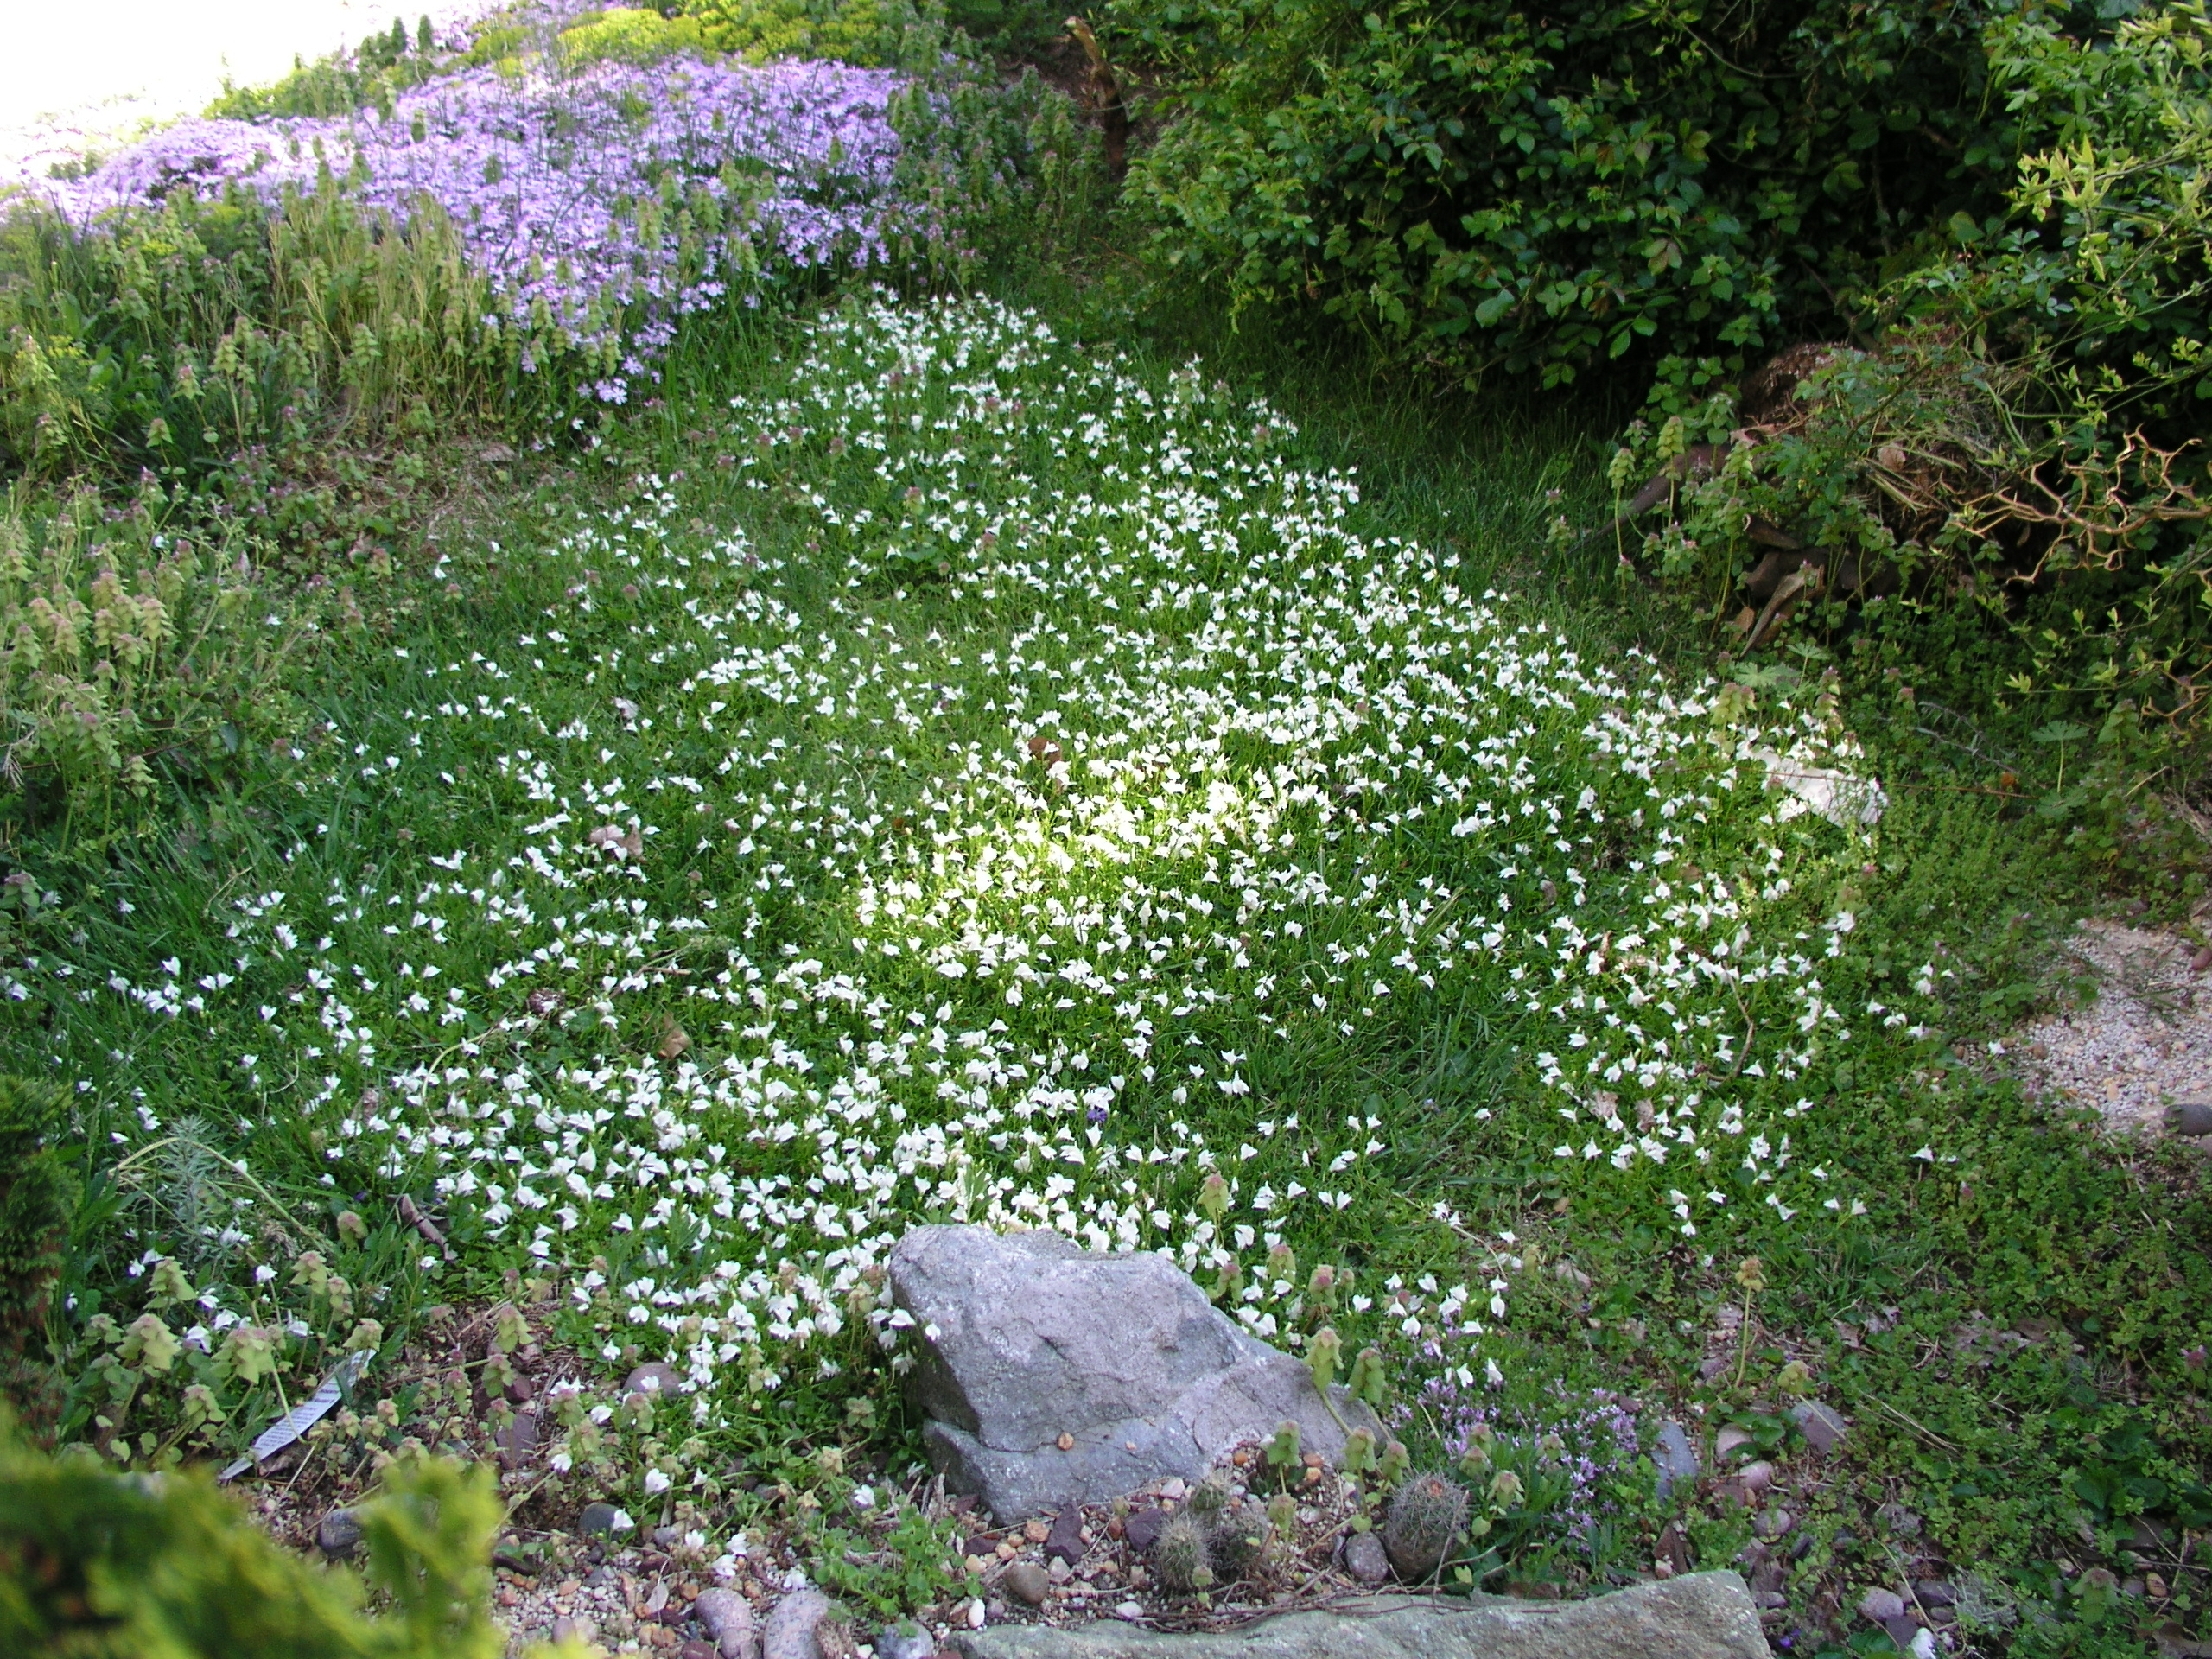 mazus_in_the_lawn_spring_2010.jpg